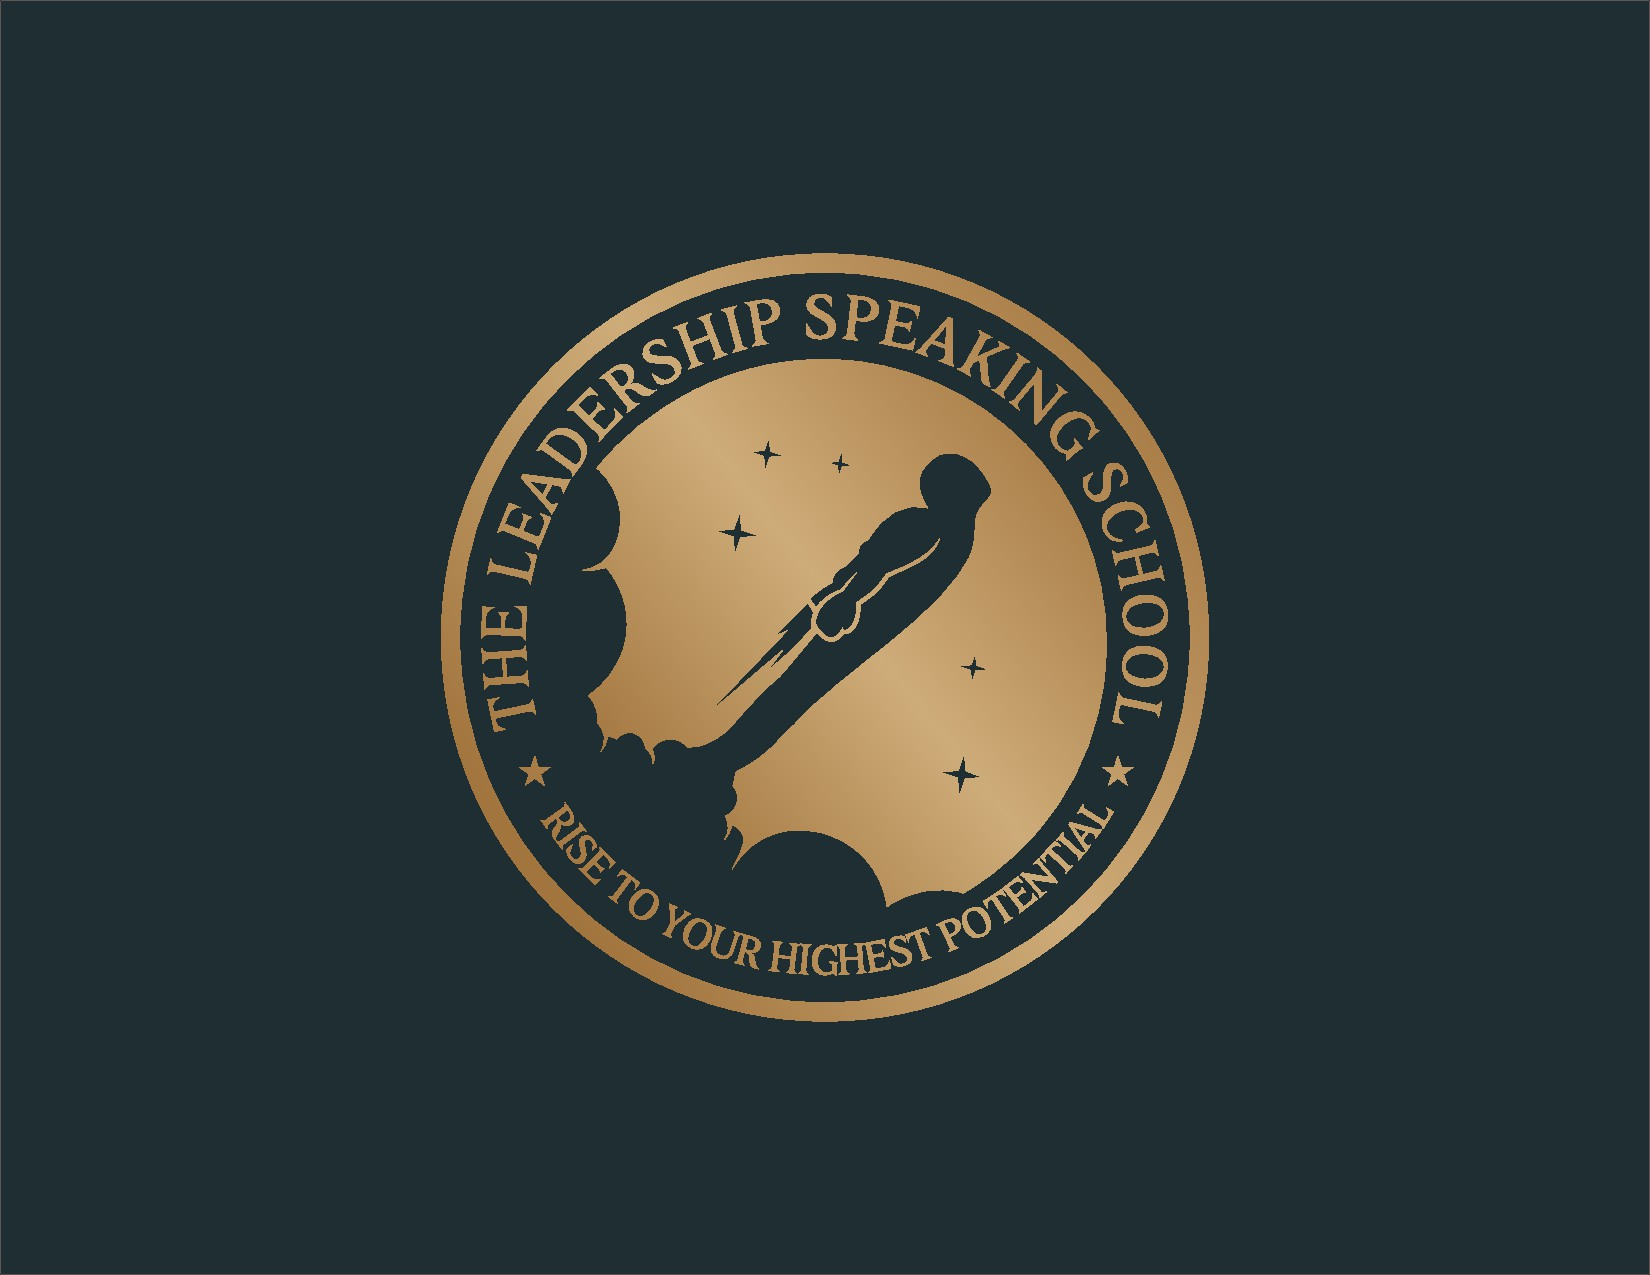 Logo for a world-class school for leadership speaking